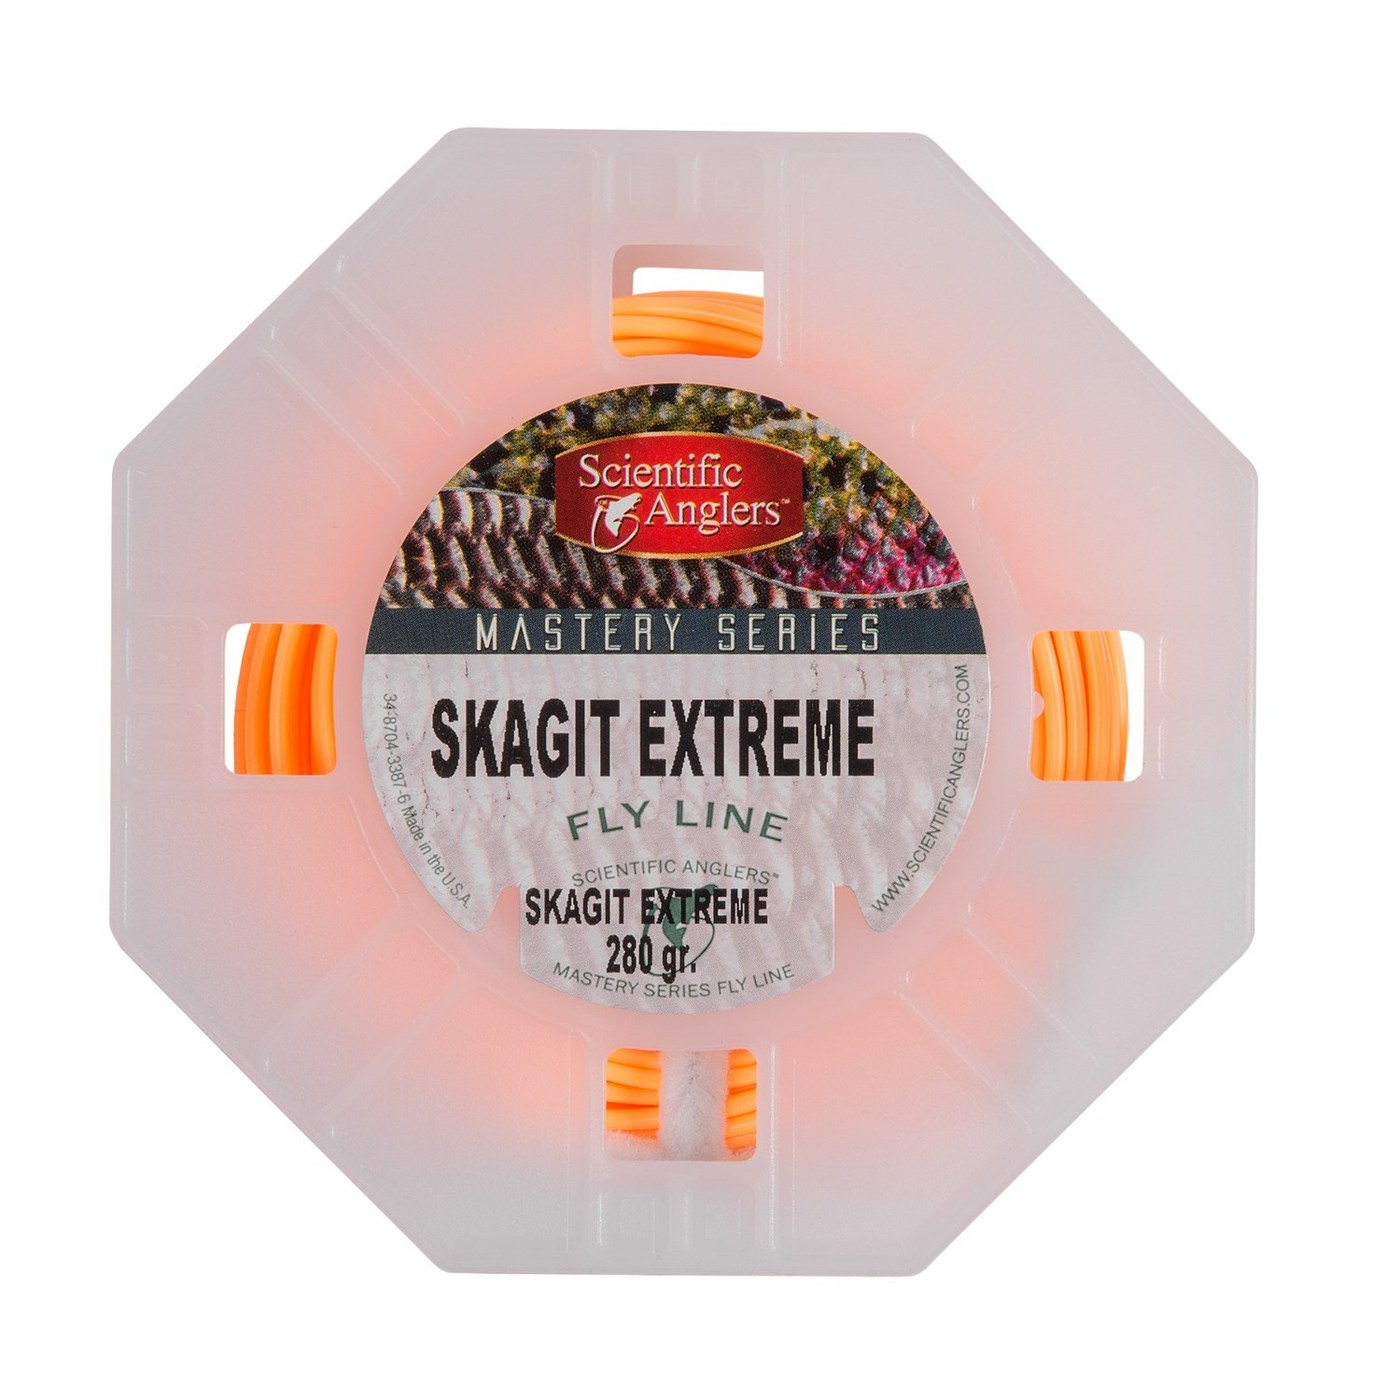 Scientific Anglers Skagit Extreme Head Fly Line with Loop